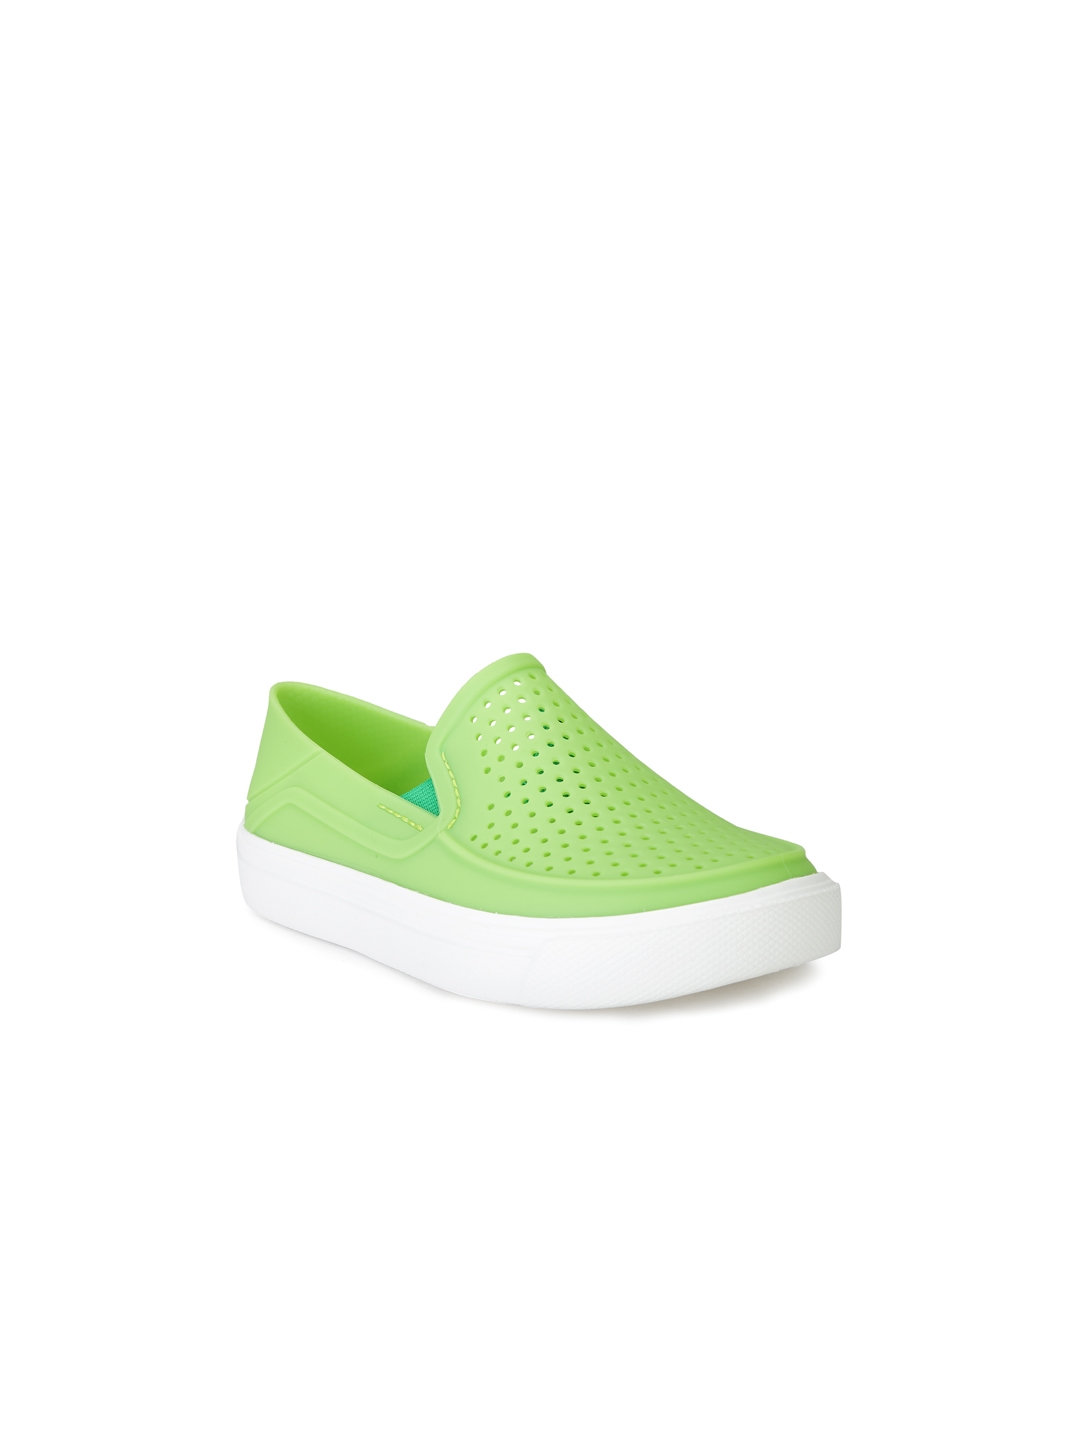 ee7a608ba5c85 Buy Crocs Girls Green Slip On Sneakers - Casual Shoes for Girls ...